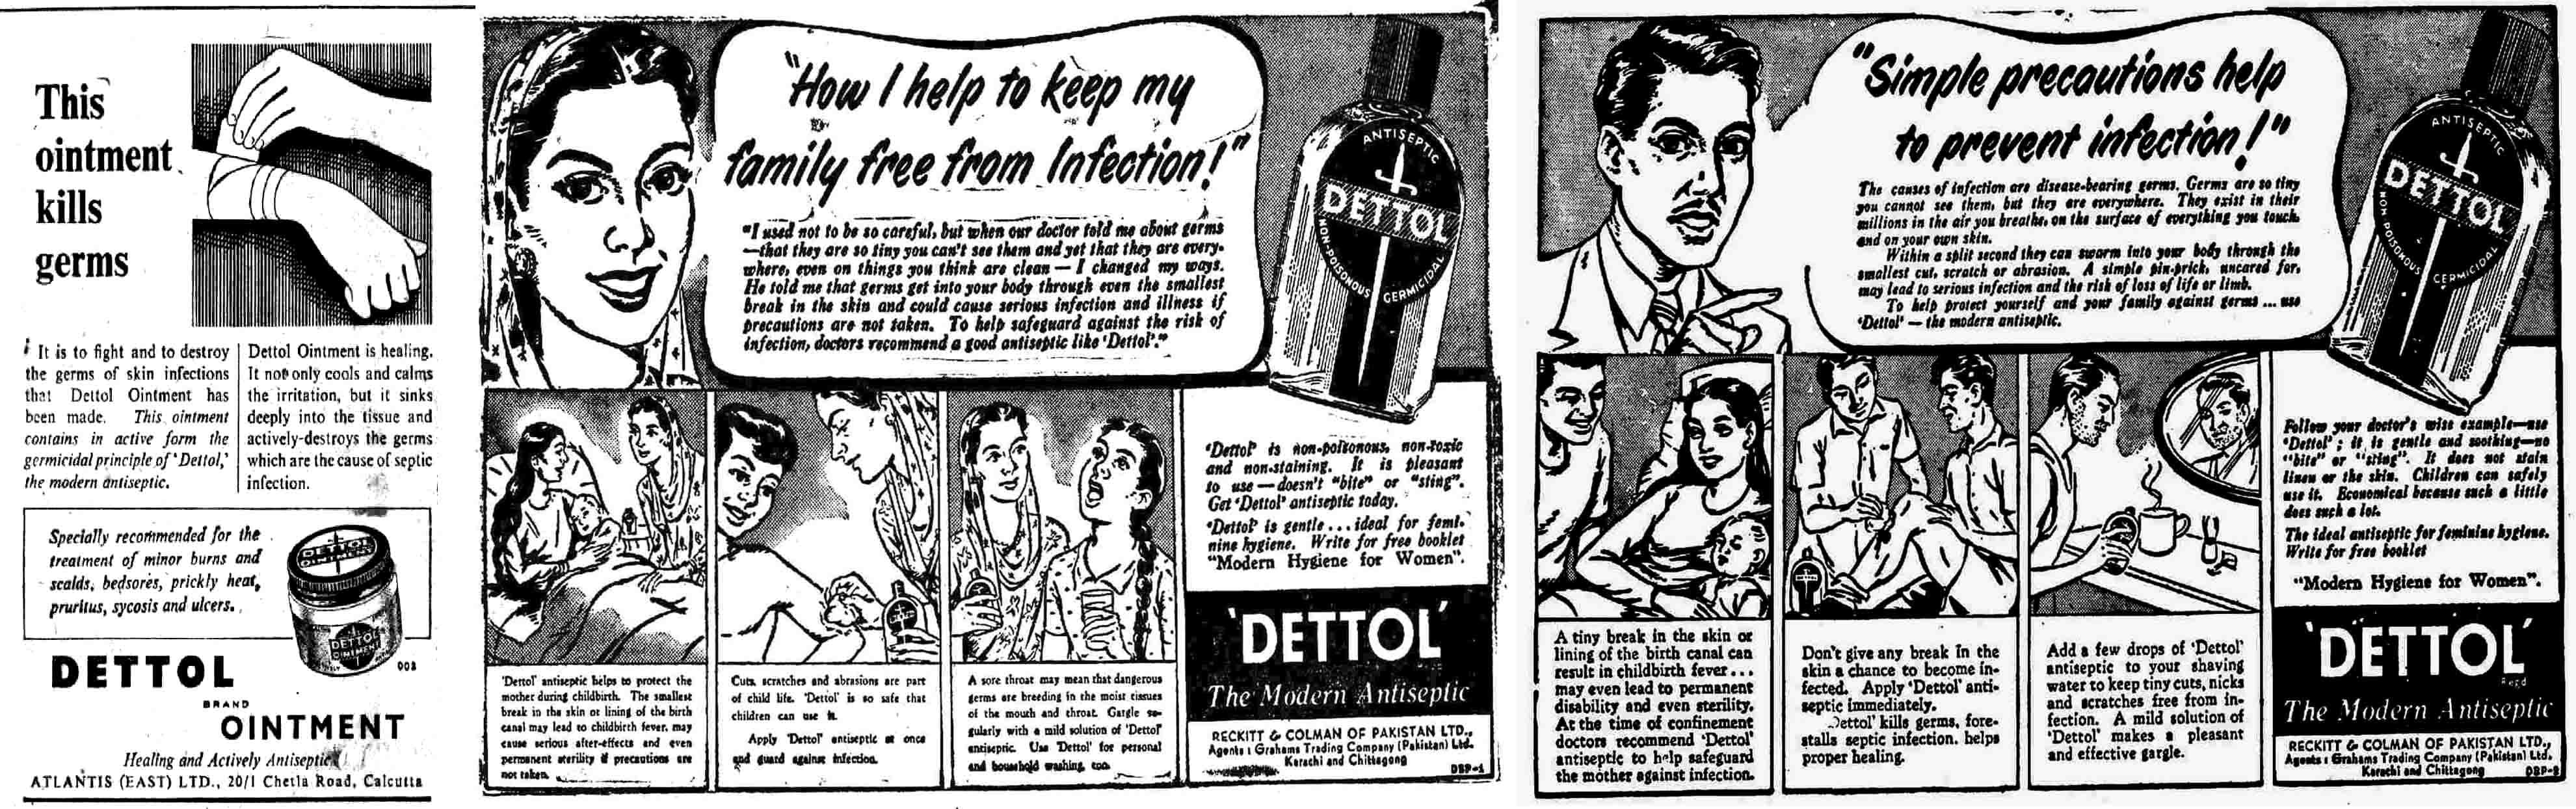 Dettol ads from 1948, 1953 and 1954